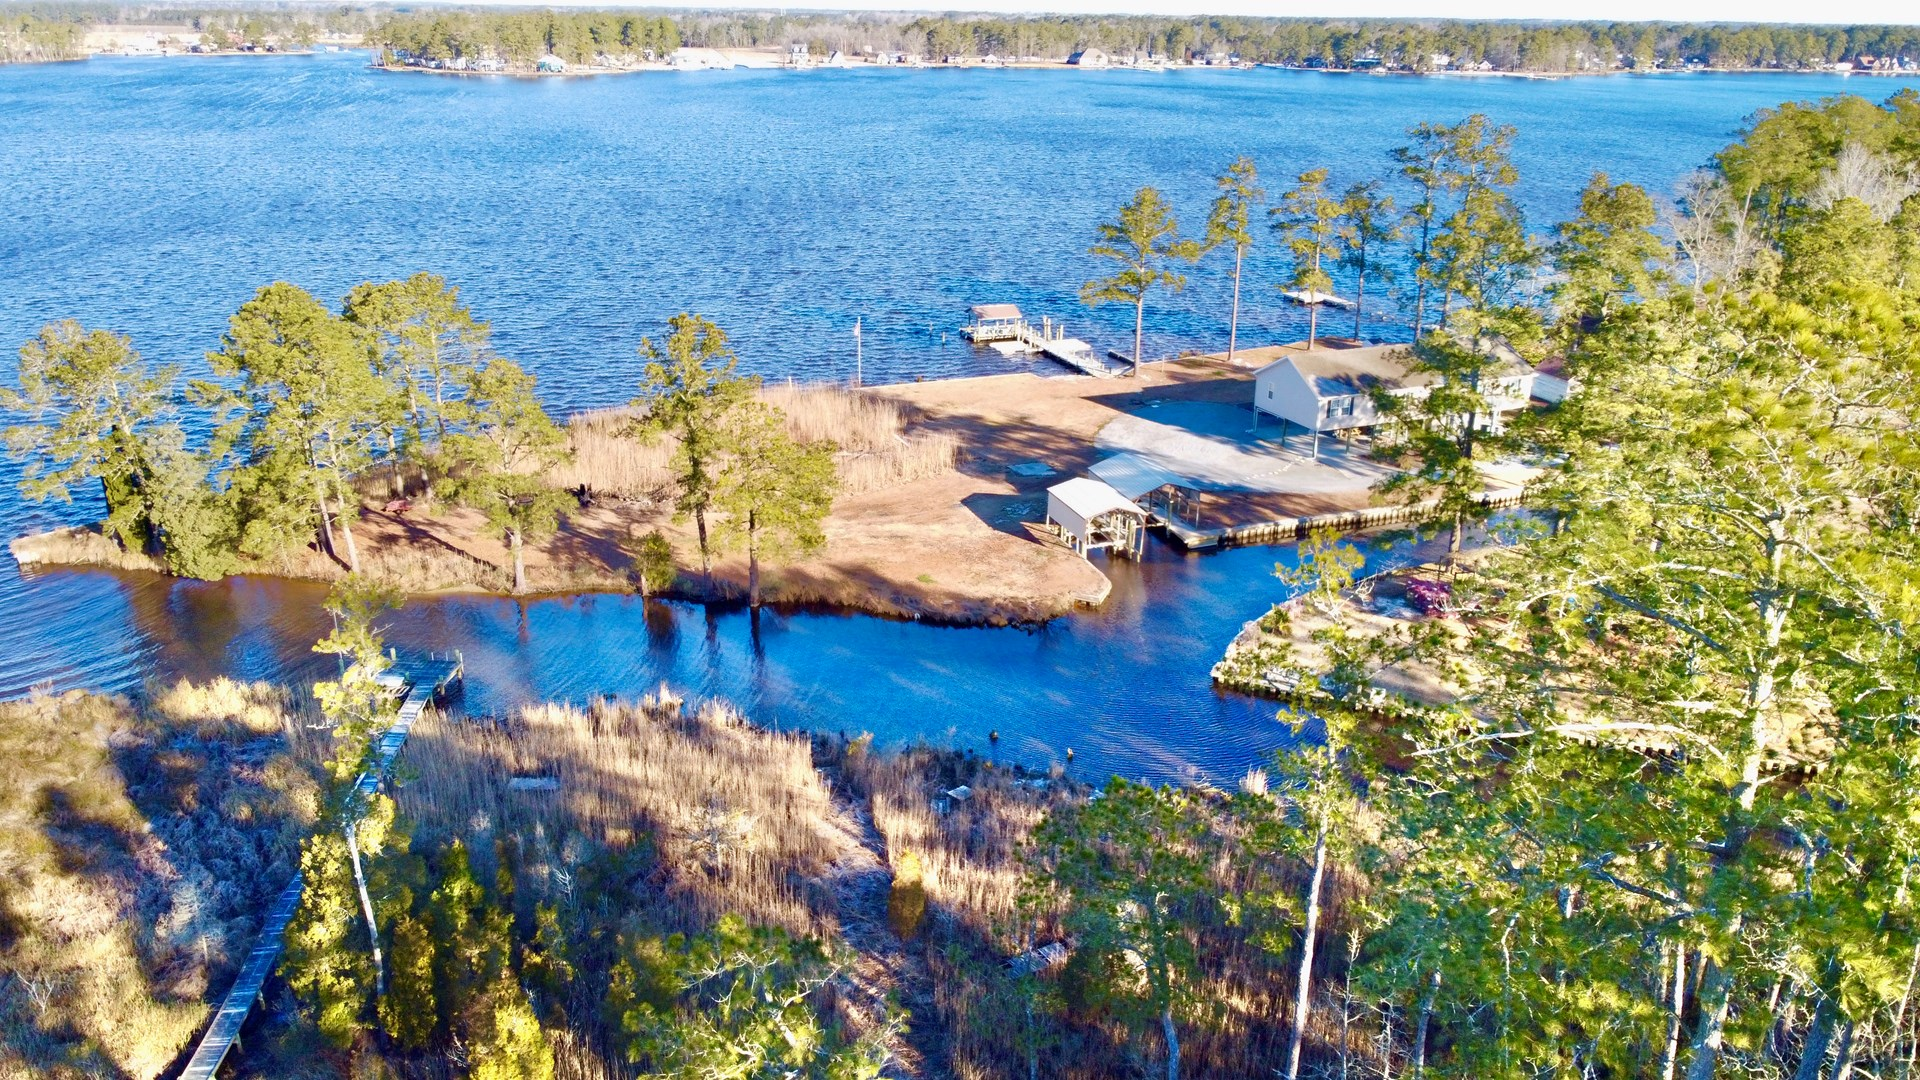 Waterfront Property for Sale in Belhaven North Carolina